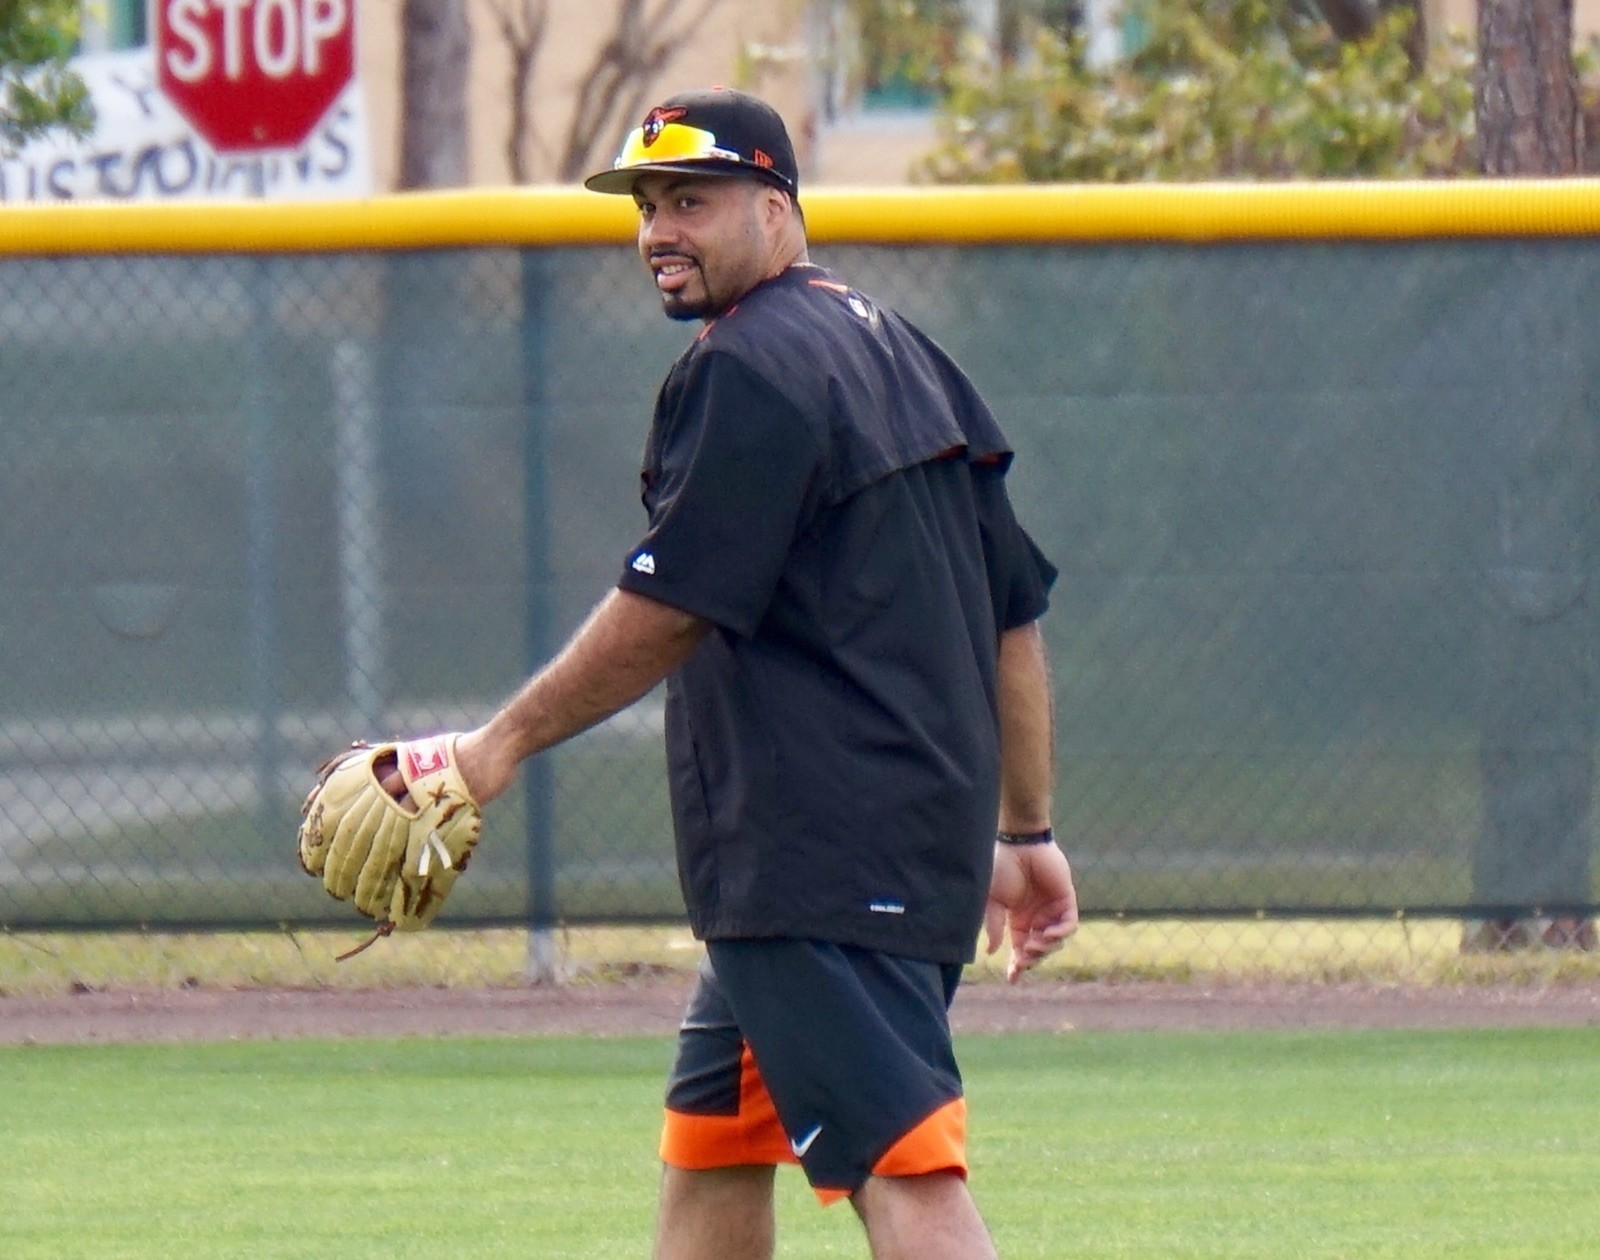 Bs-sp-orioles-spring-training-0315-20170314